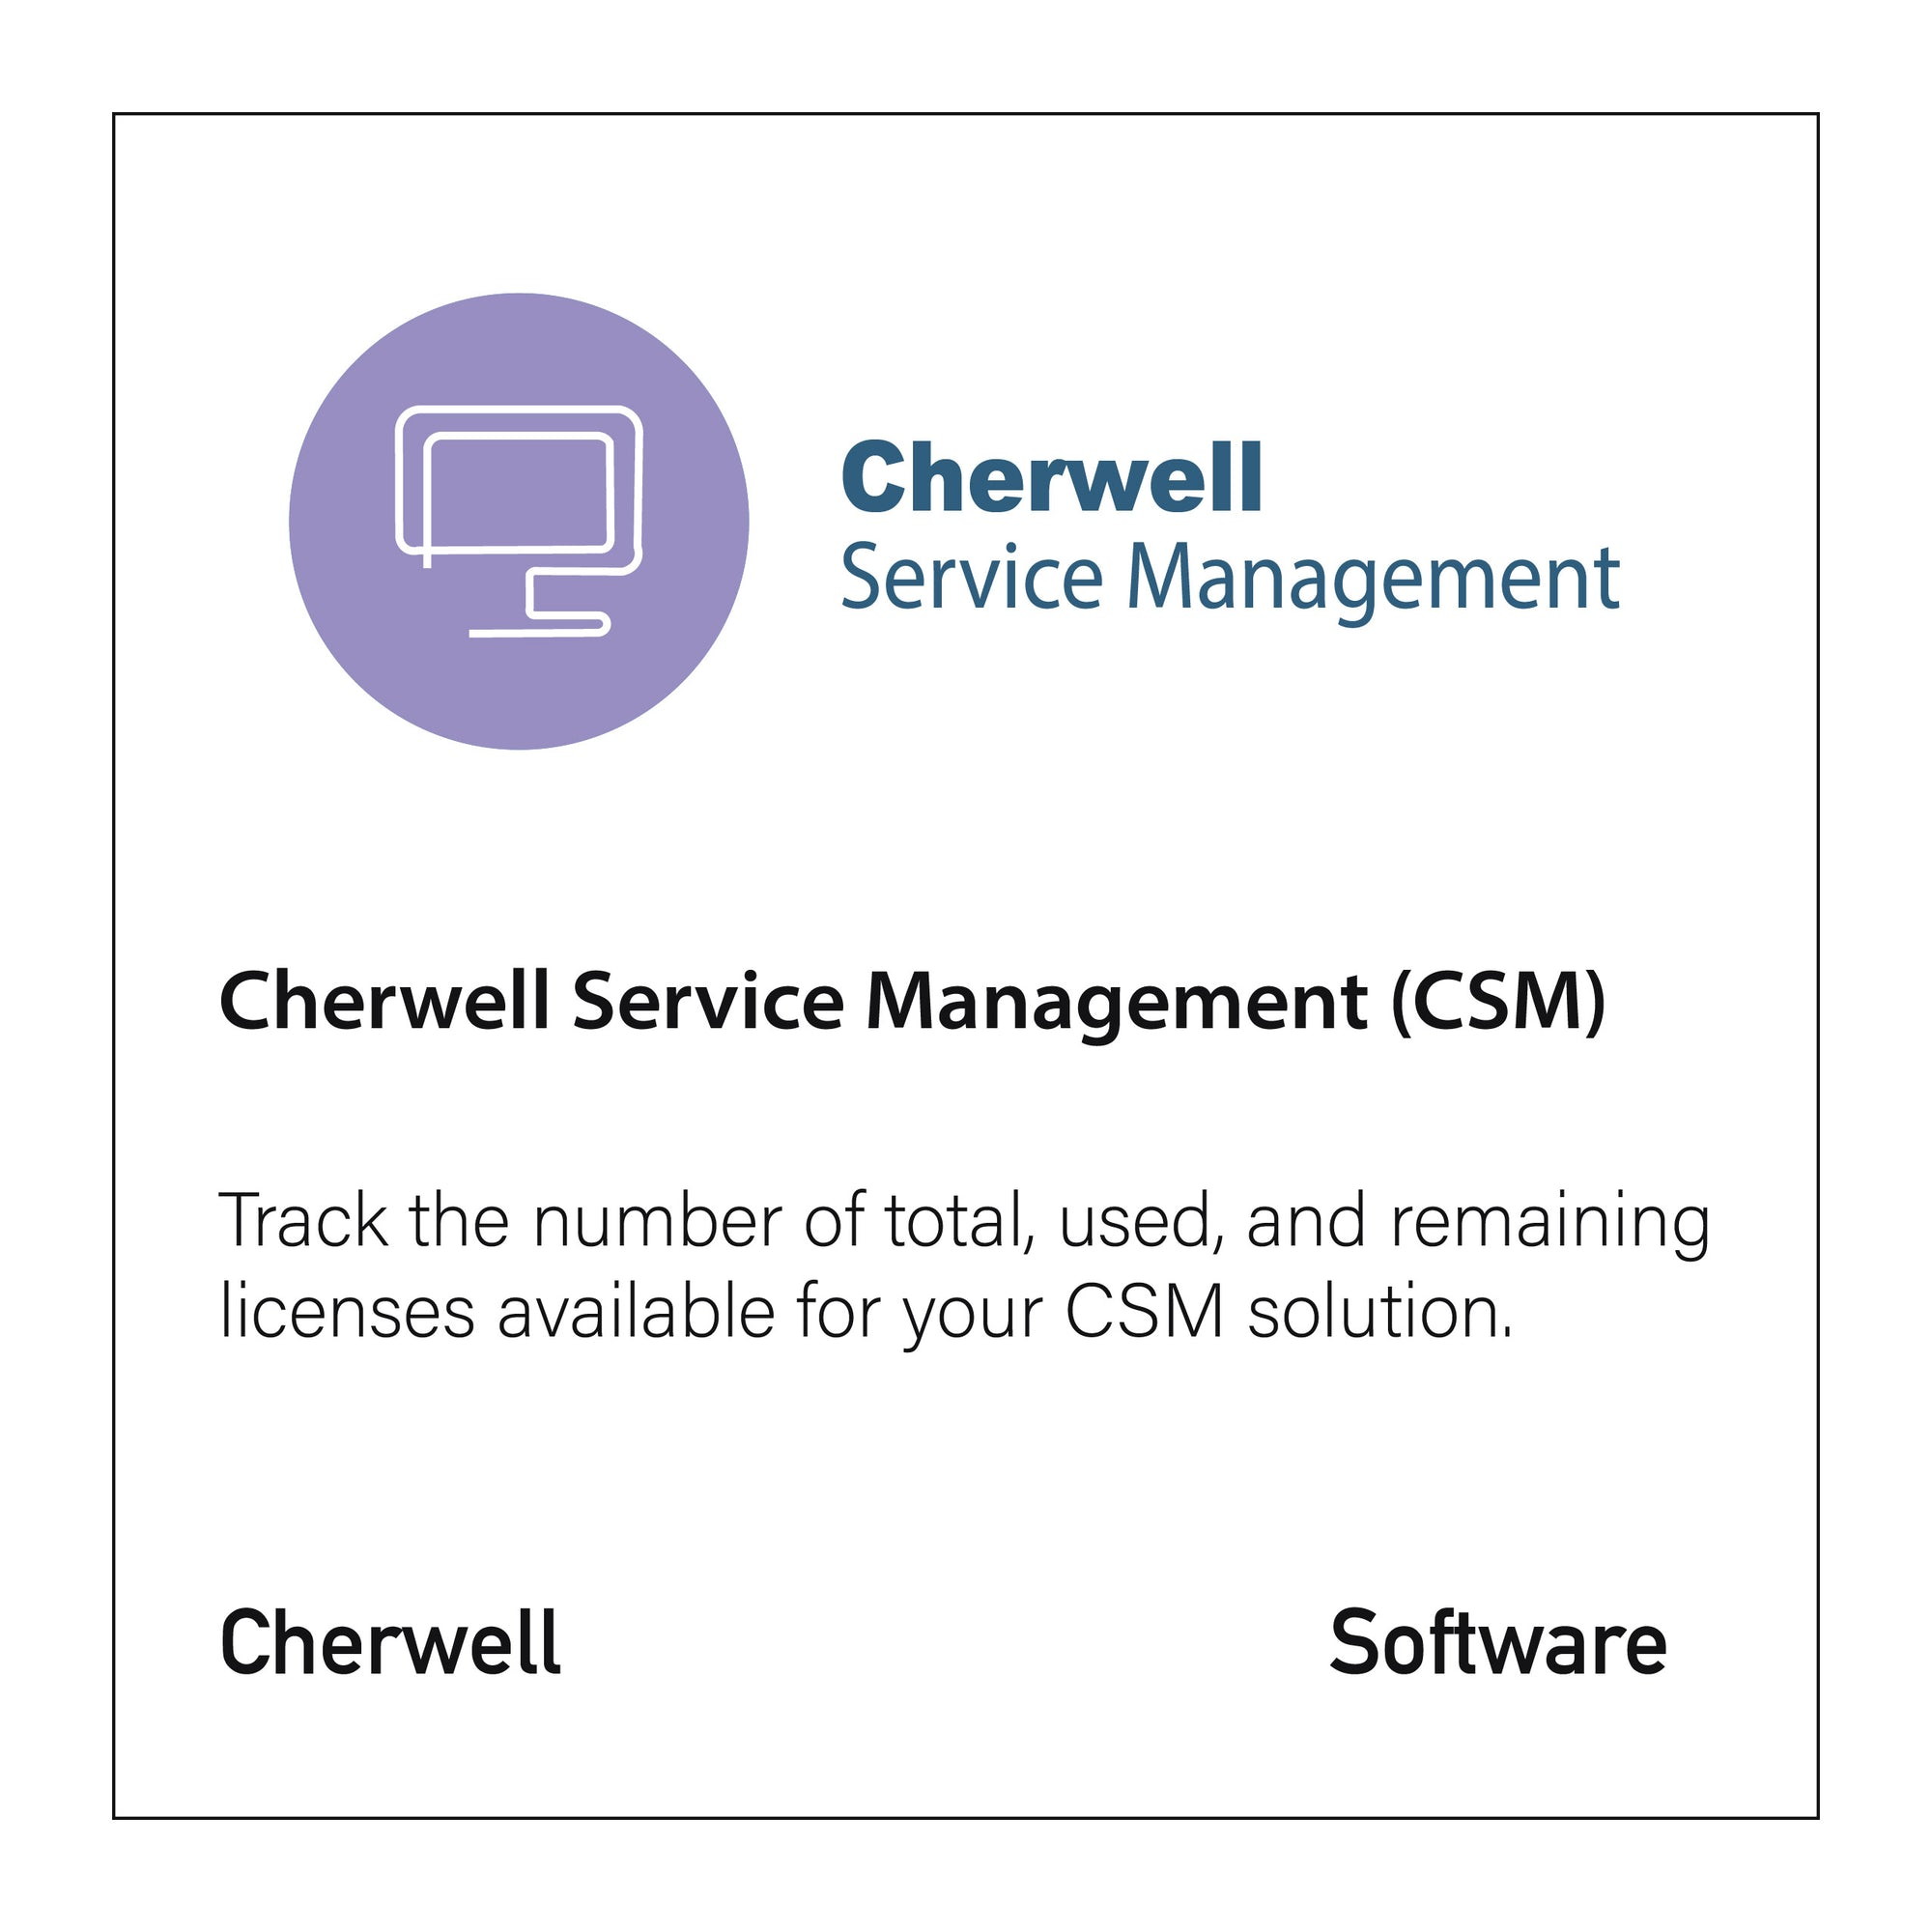 Cherwell Service Management (CSM) - CloseReach Ltd